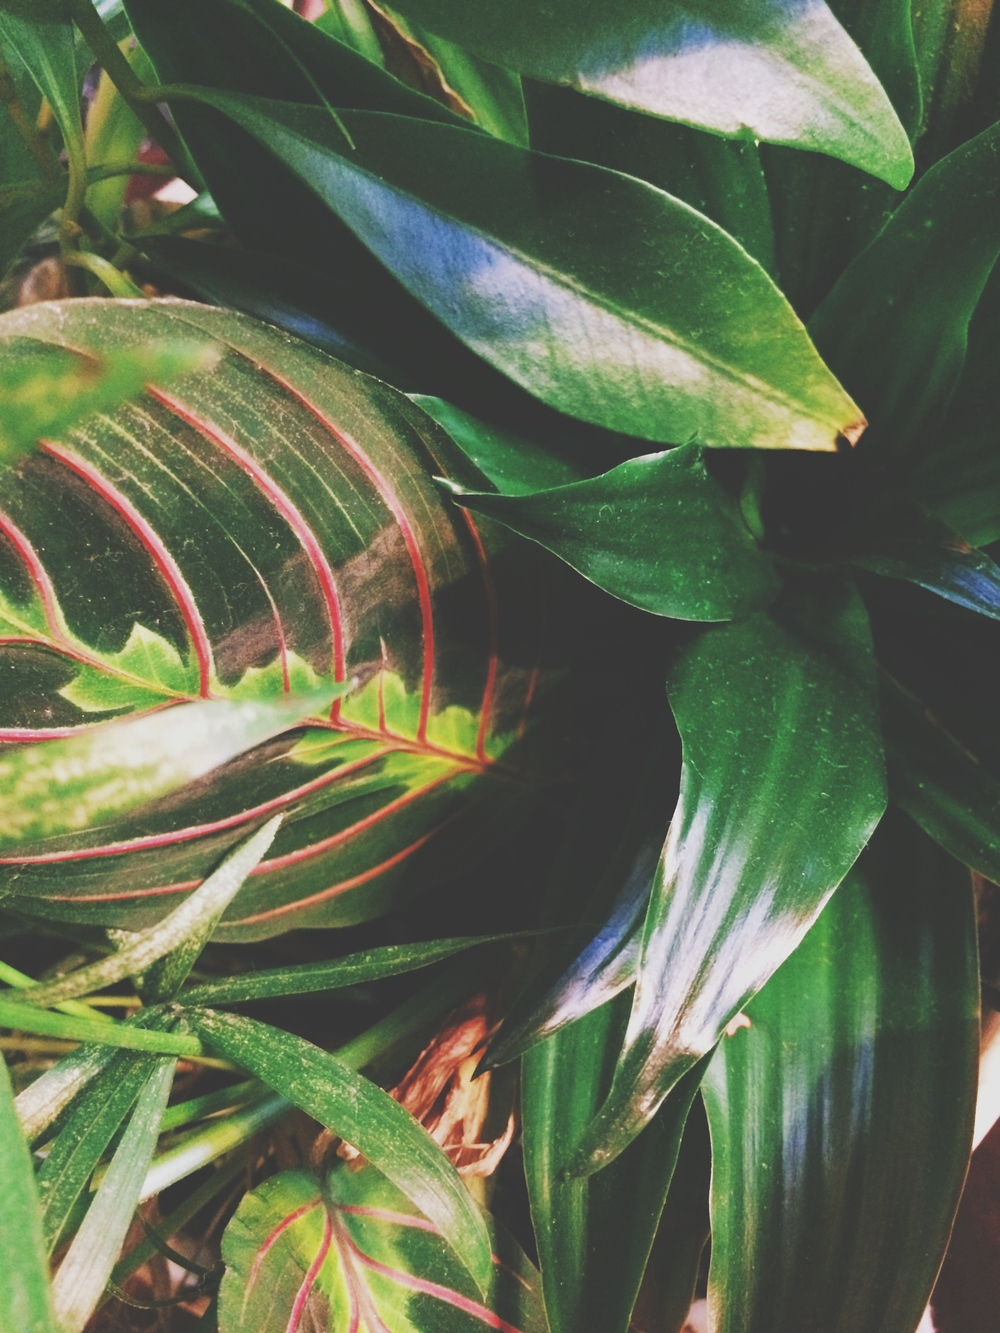 I was obsessed with the leaves with the red lines.